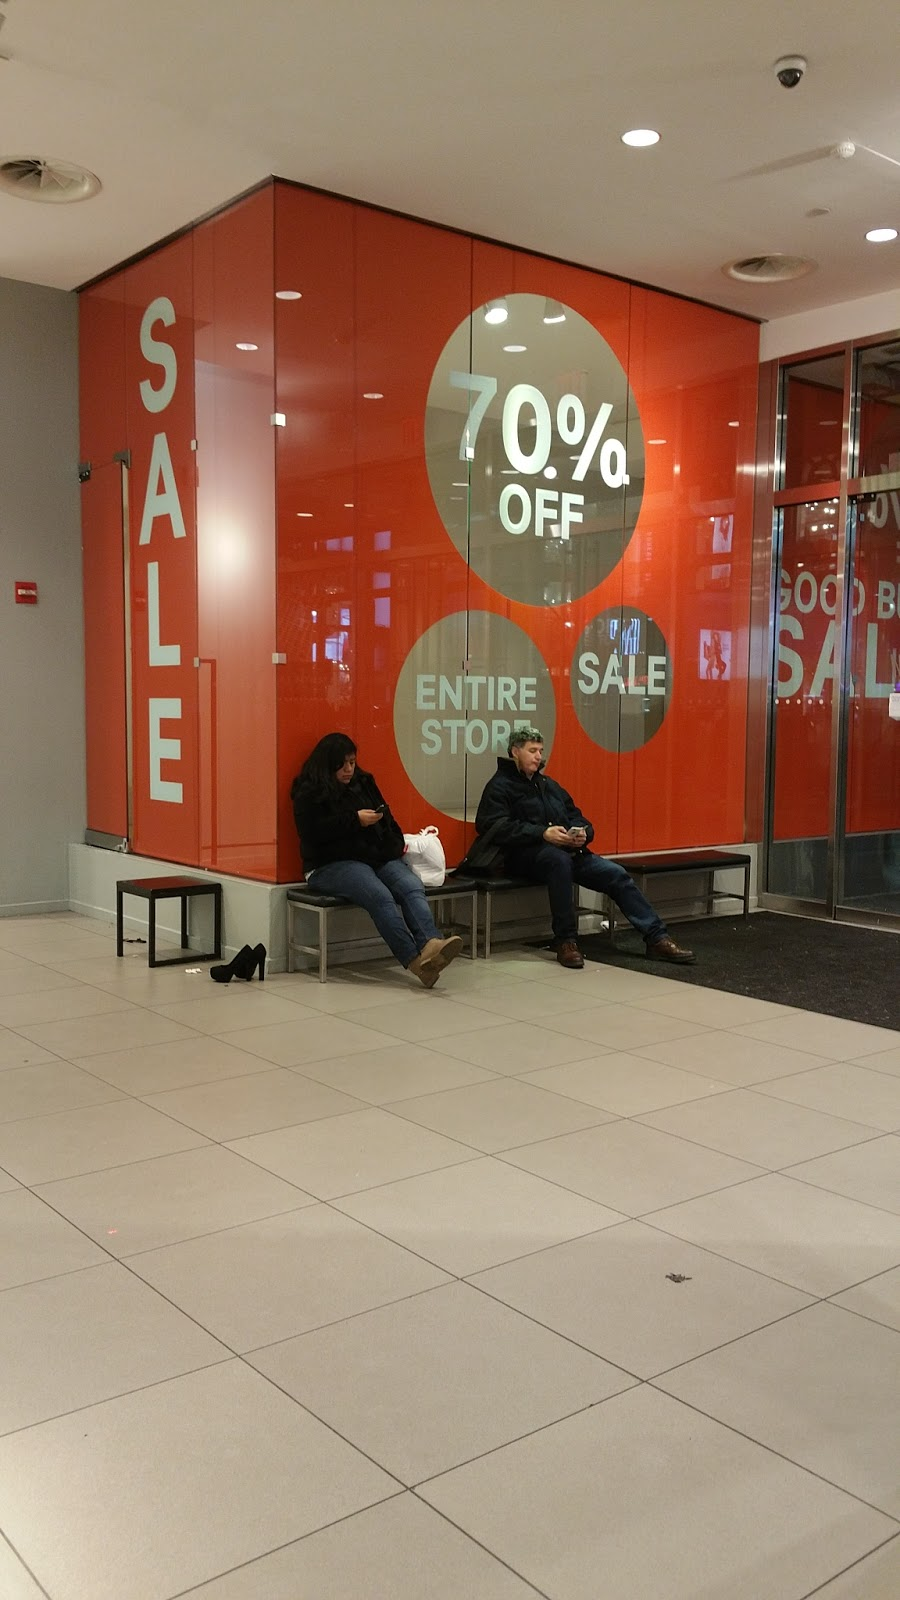 8f8a6e1d40 Terresa's Steals and Deals! =): LAST DAY: This H&M Store Closing: 70 ...